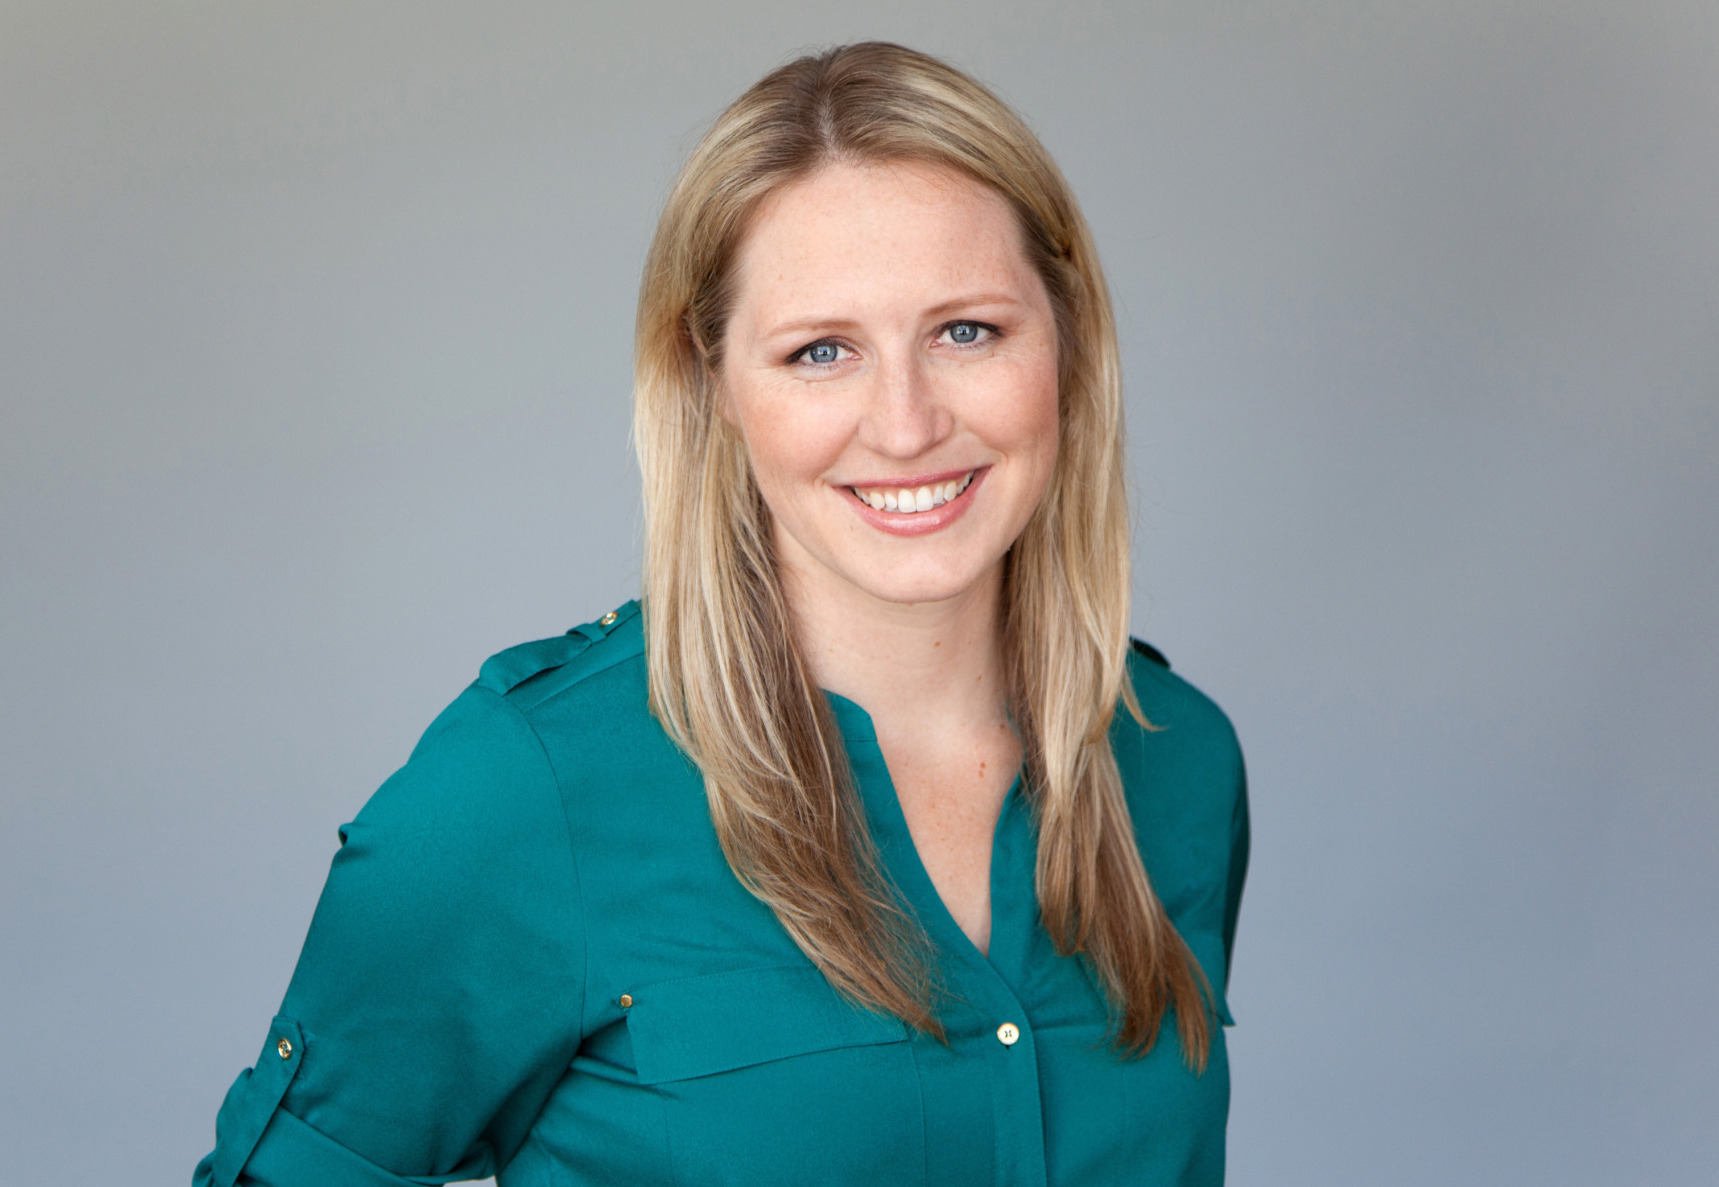 Exclusive interview: Indiegogo co-founder on how she helped create crowdfunding concept